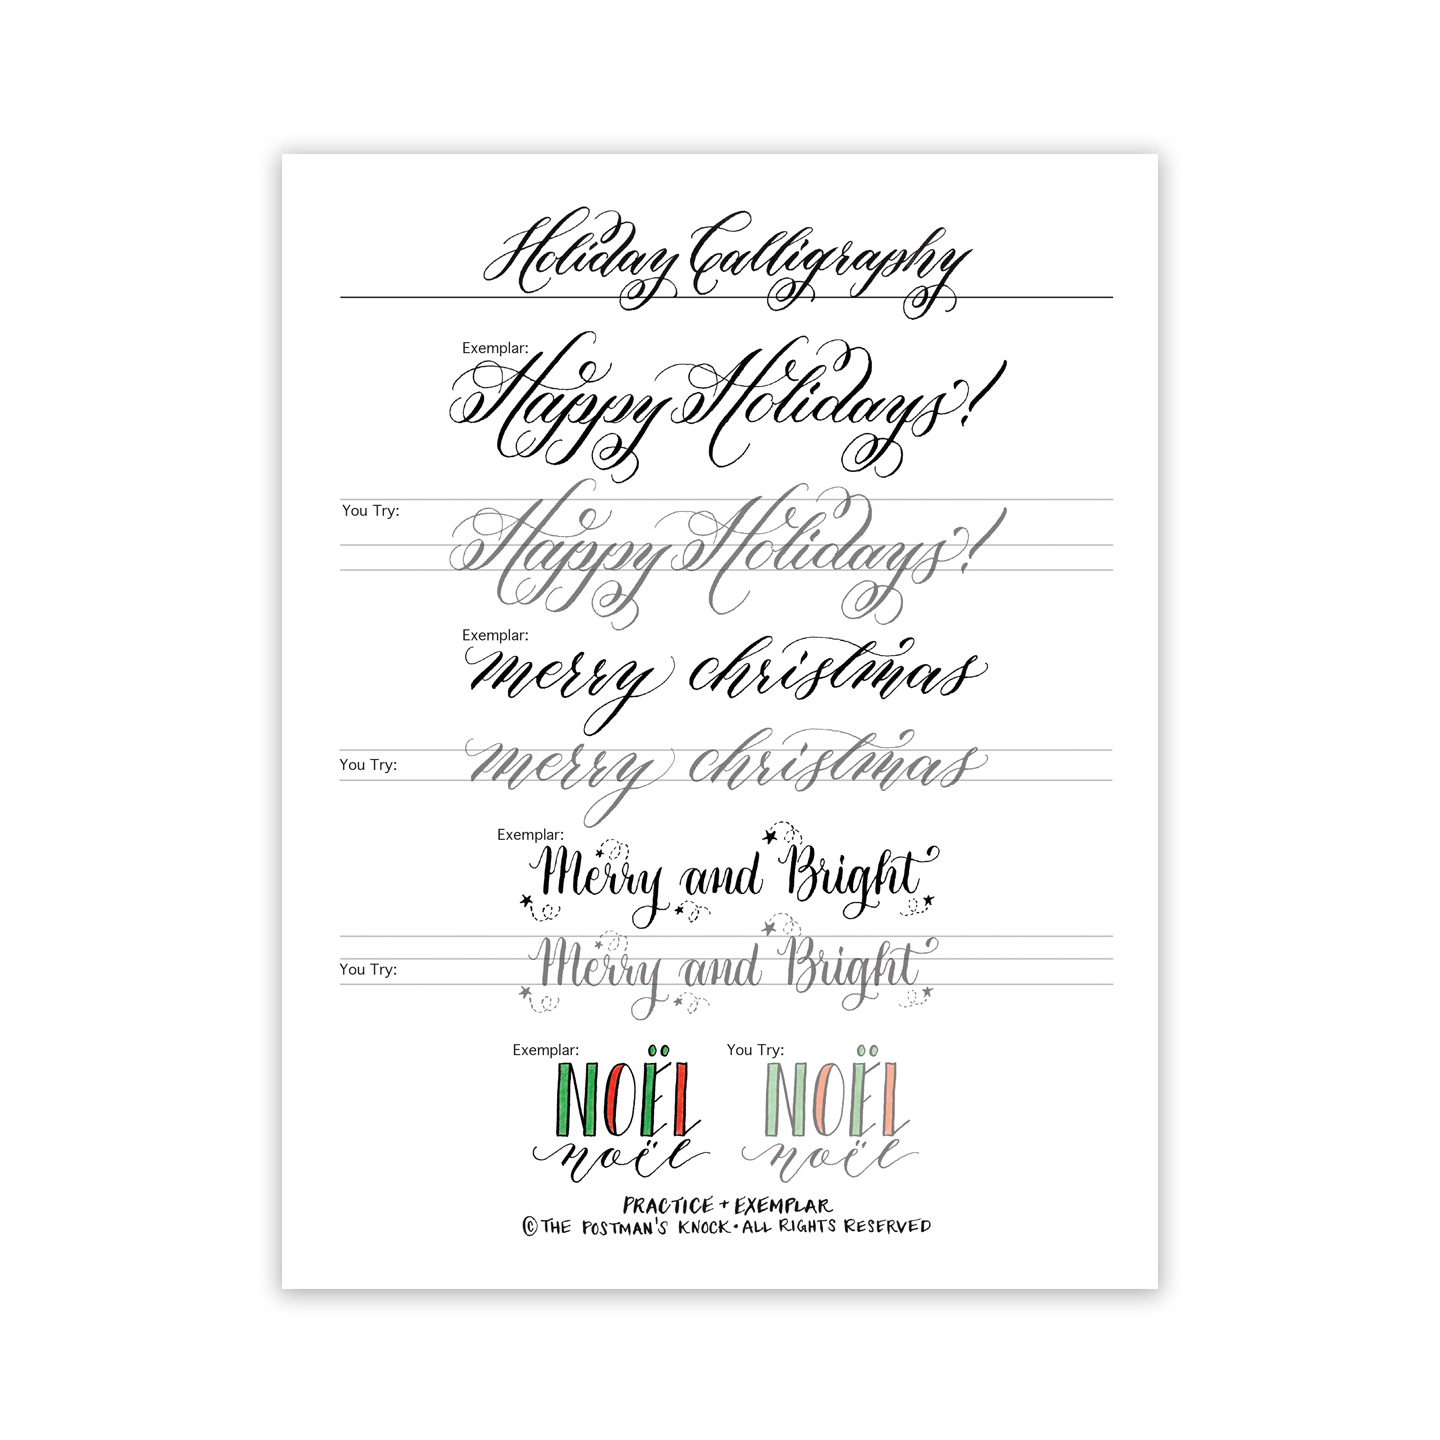 Free Holiday Calligraphy Exemplar | The Postman\'s Knock